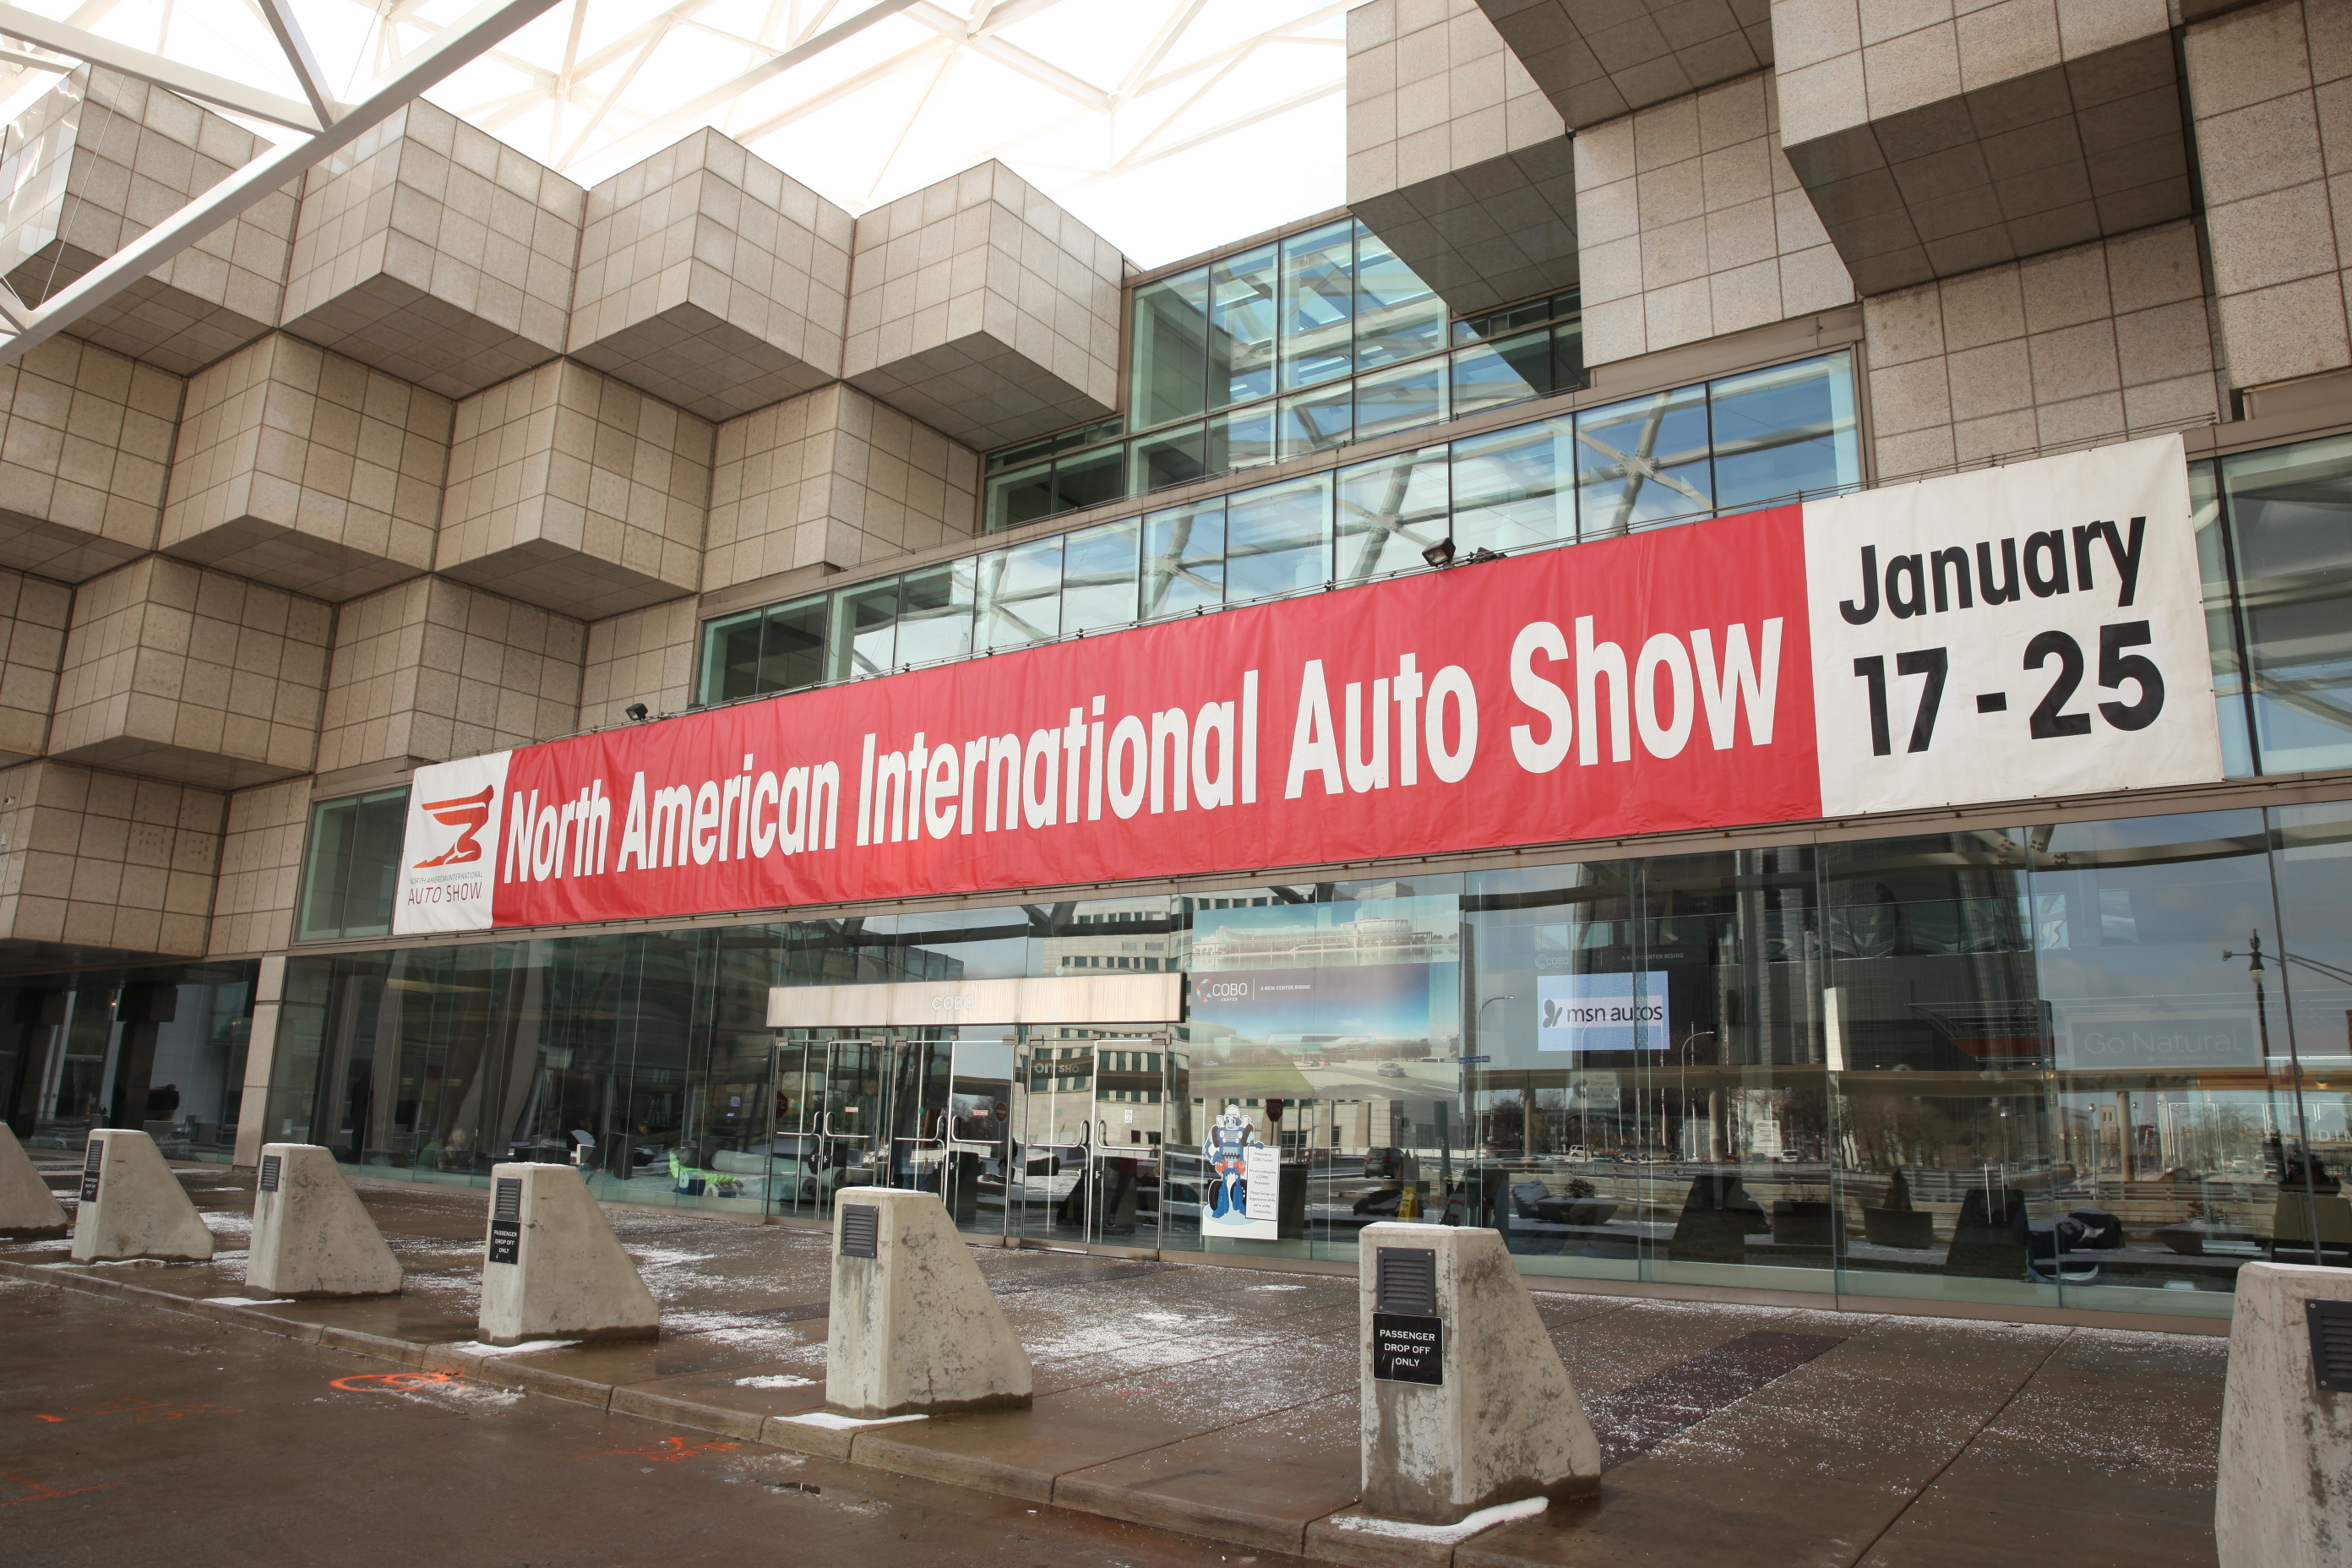 LEGOLAND® DISCOVERY CENTER MICHIGAN  to Unveil GMRENCEN LEGO Model at North American International Auto Show